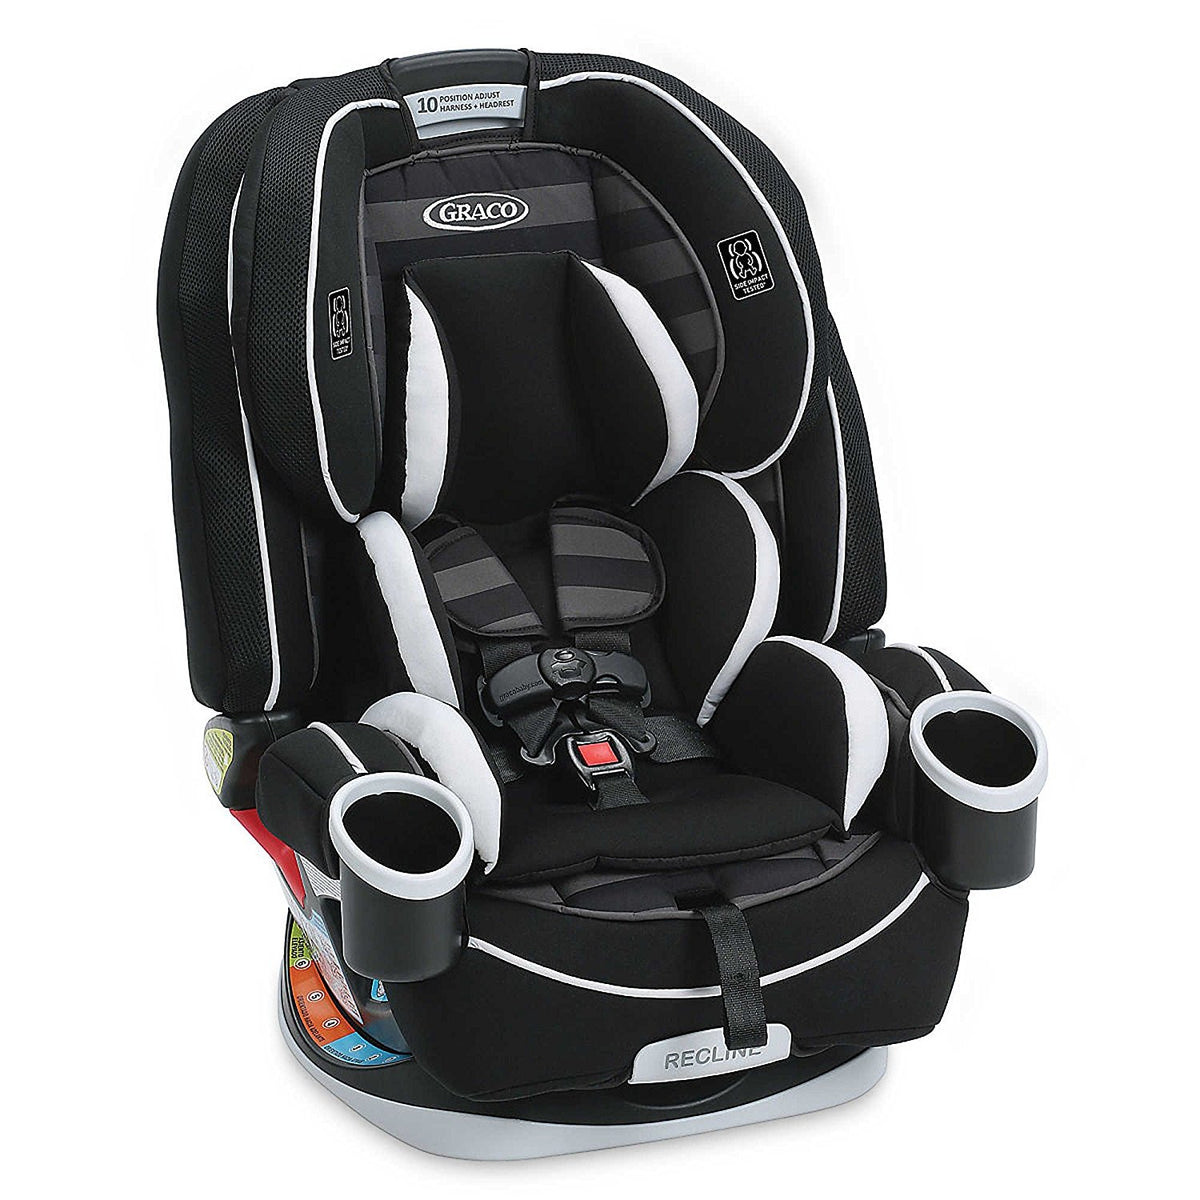 graco 4ever all in one convertible car seat babydots malaysia. Black Bedroom Furniture Sets. Home Design Ideas